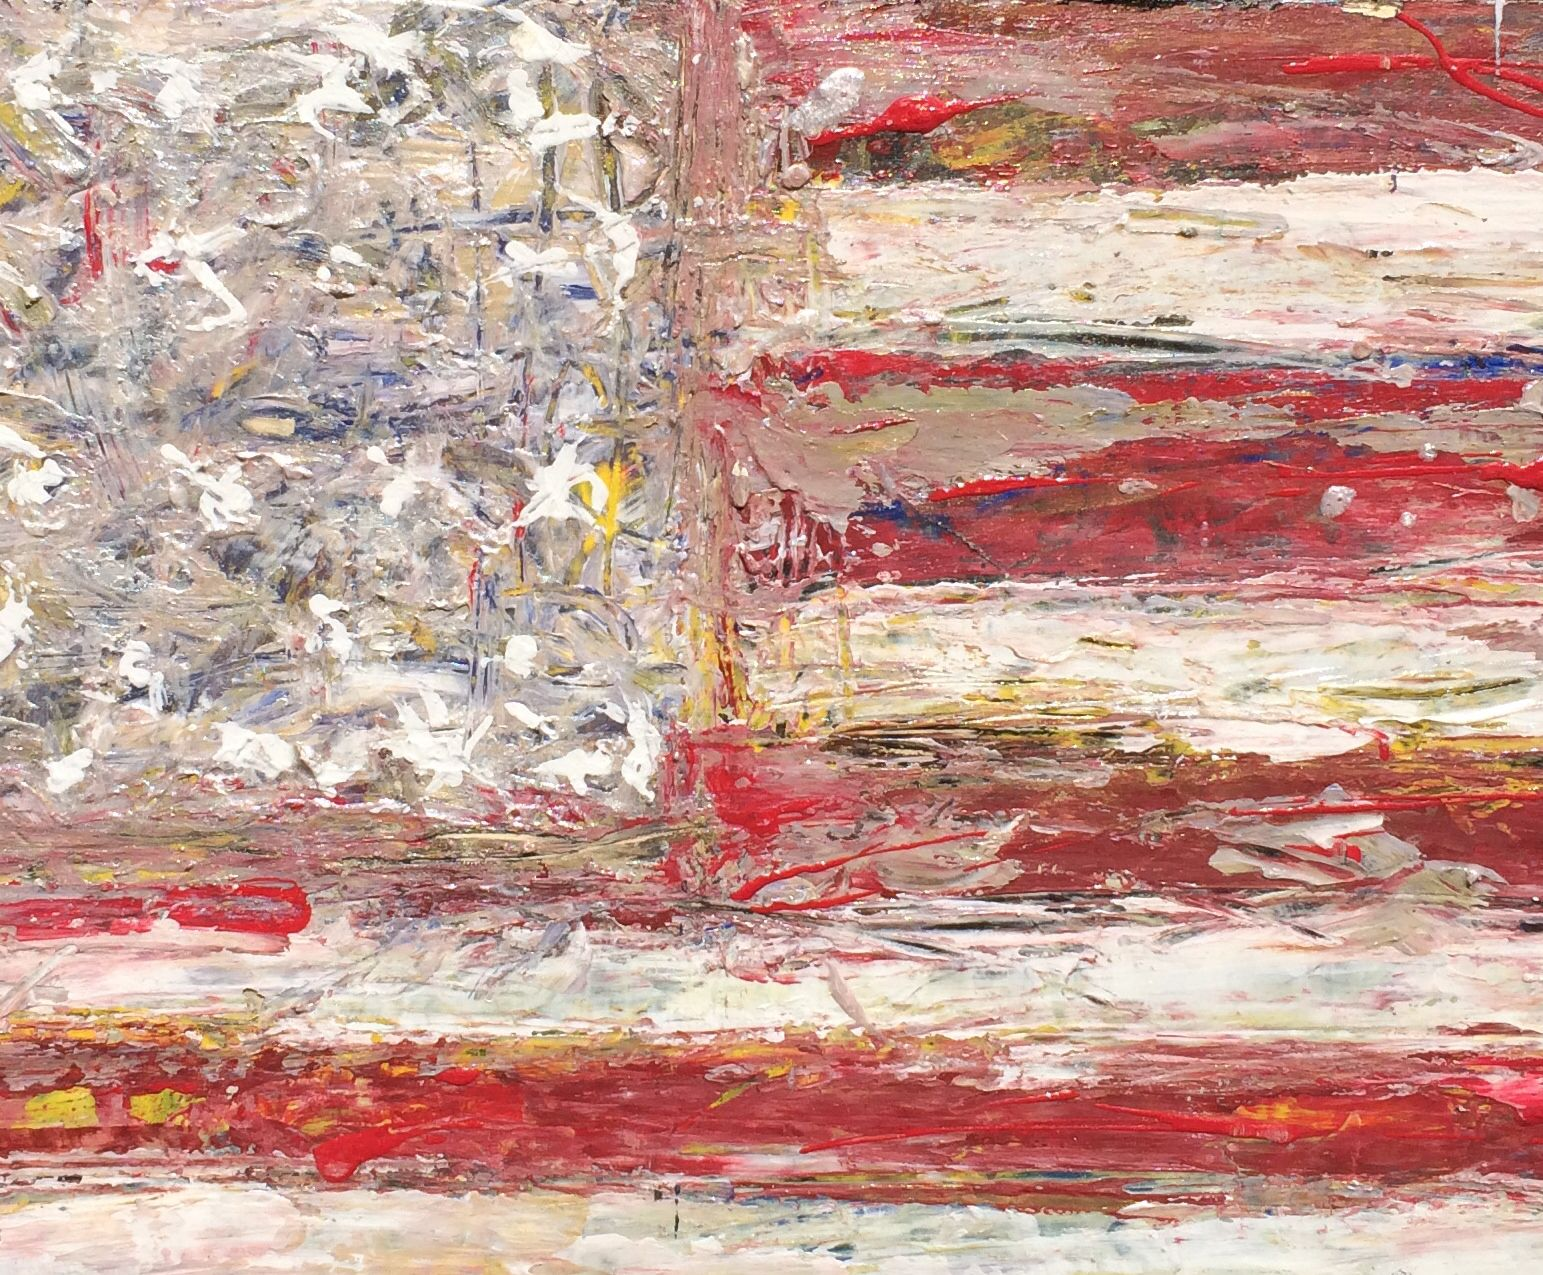 Detail from American Flag painting.